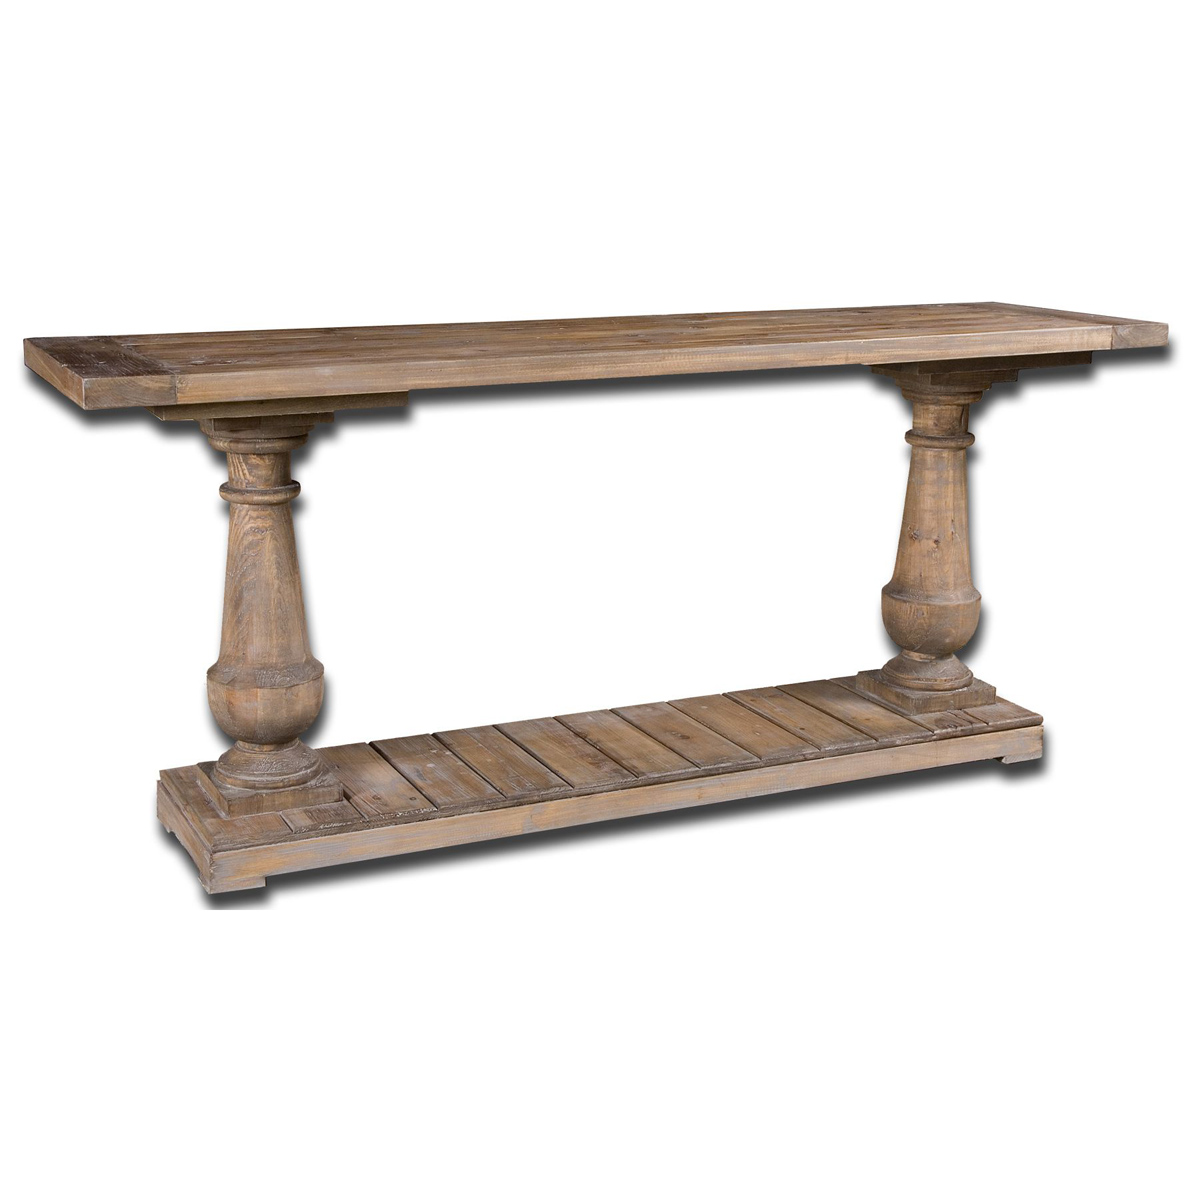 Black Forest Decor Stratford console table